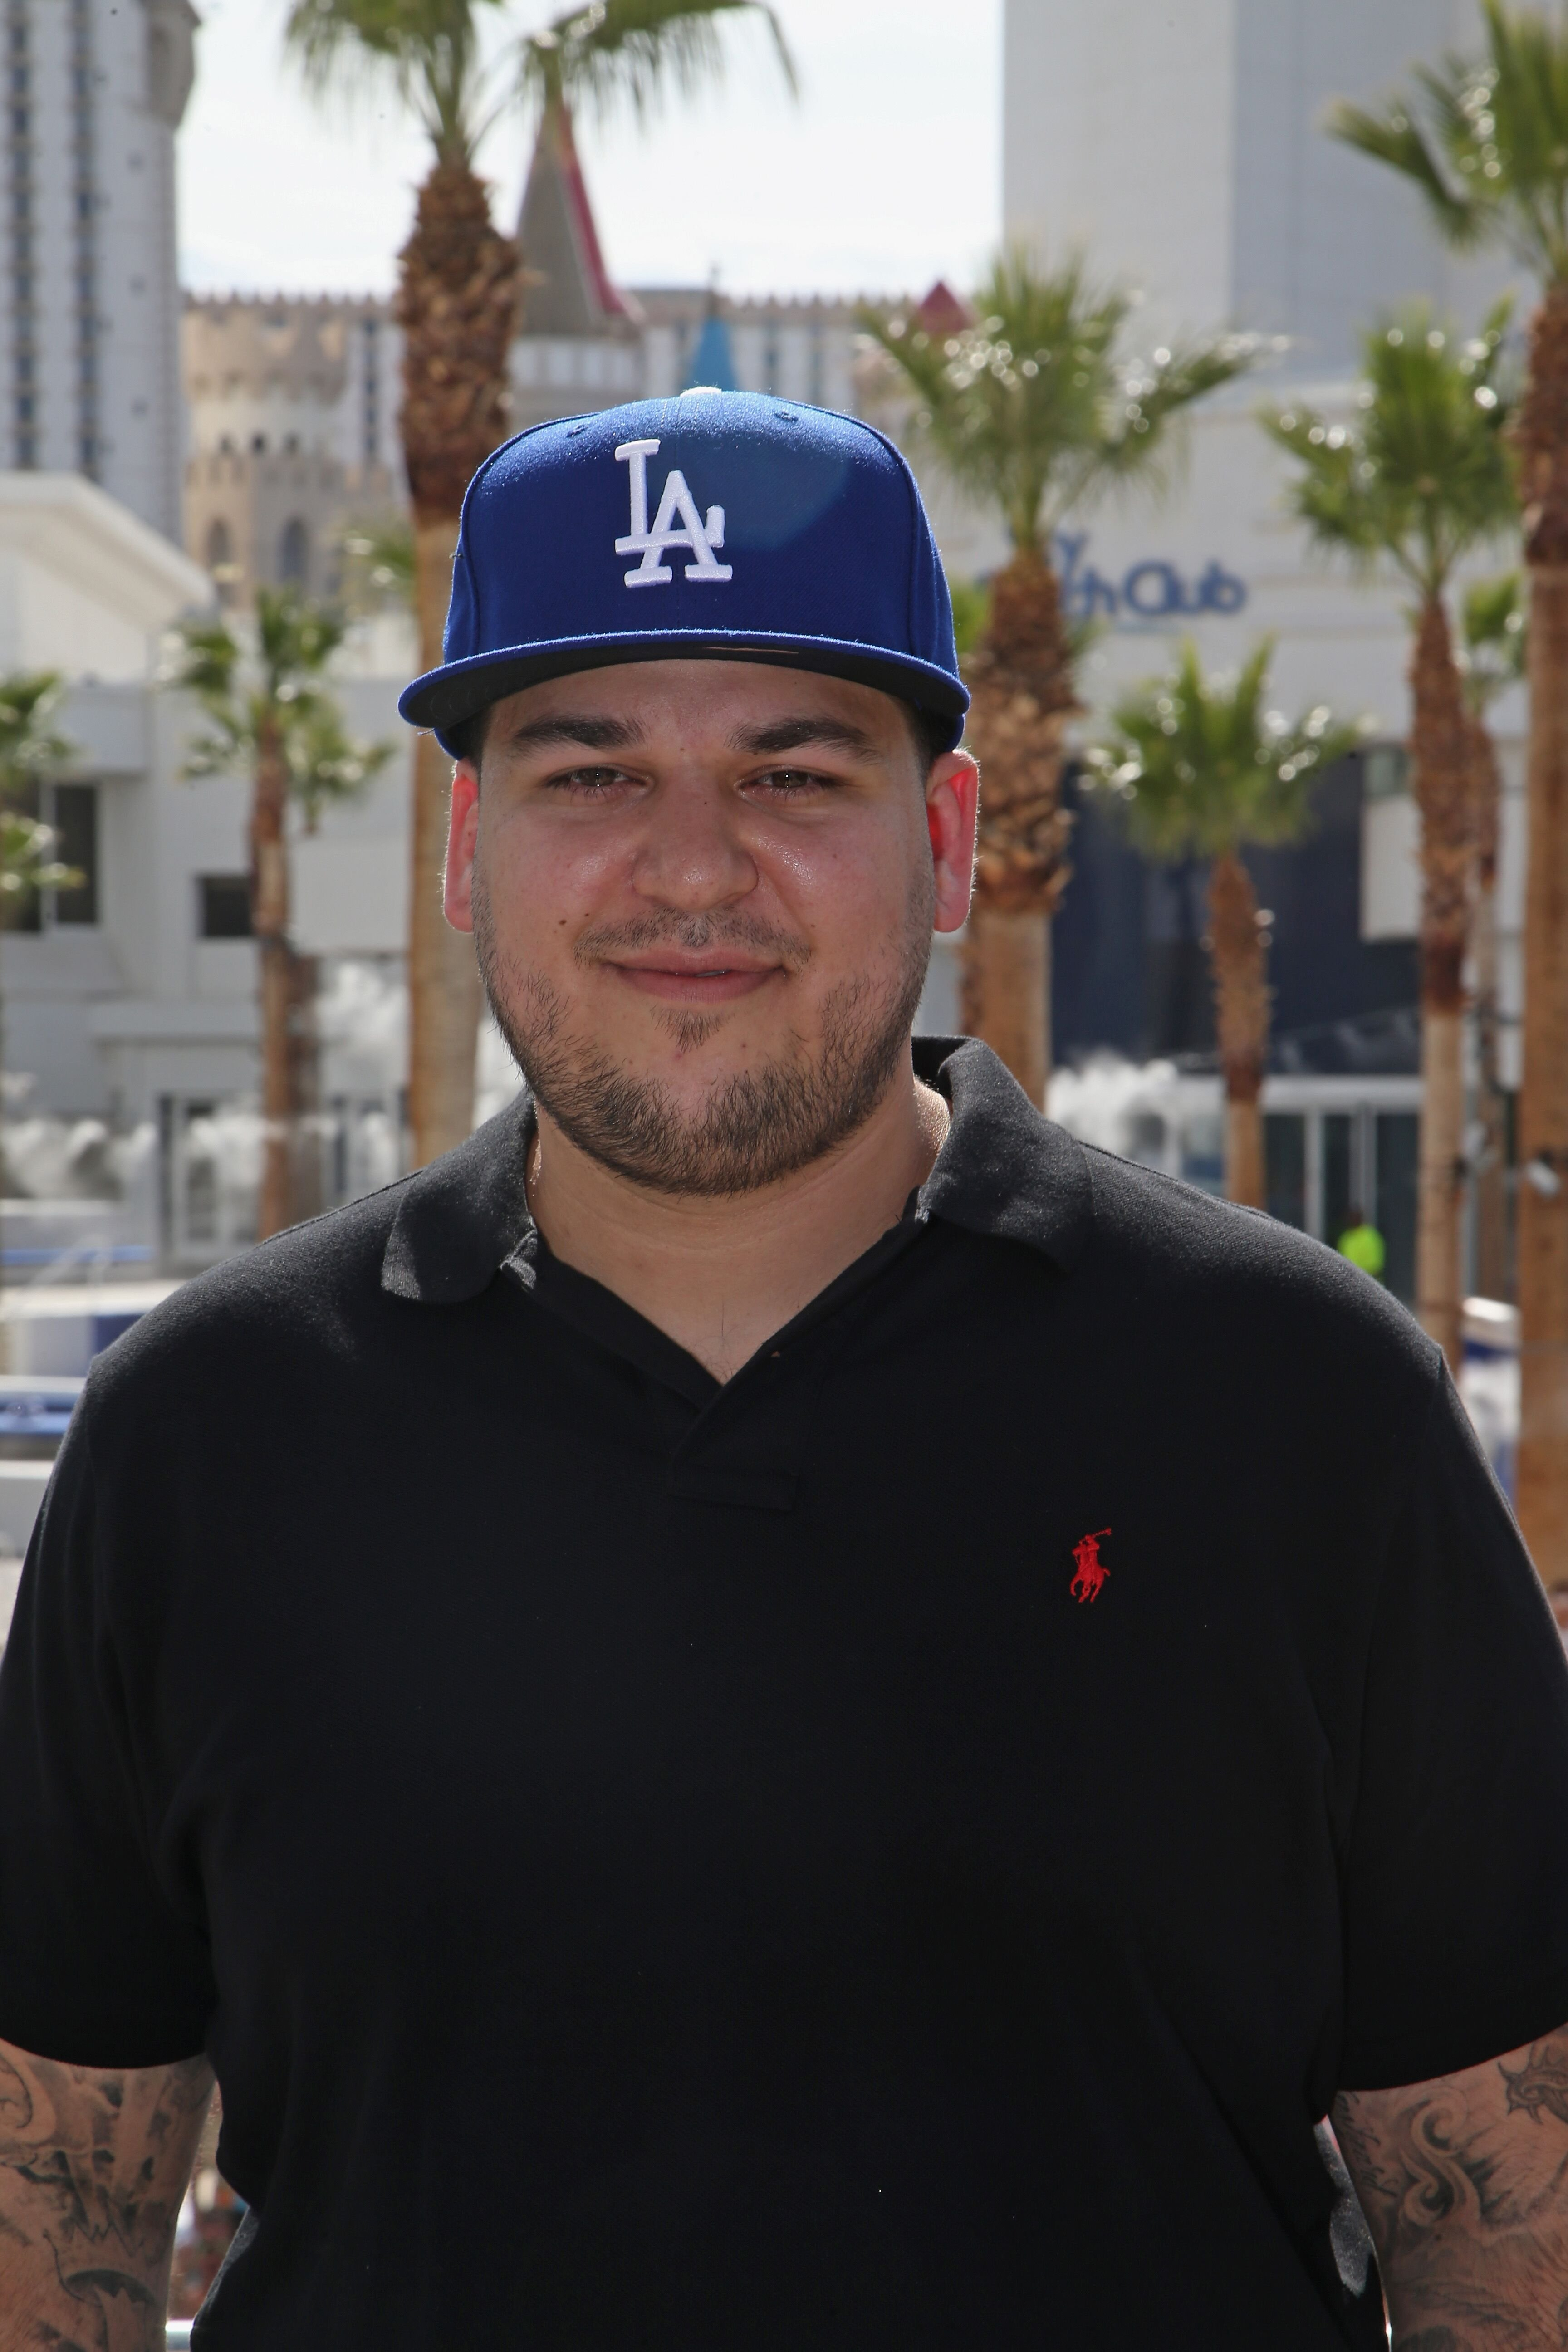 Television personality Rob Kardashian attends the Sky Beach Club at the Tropicana Las Vegas on May 28, 2016 | Photo: Getty Images